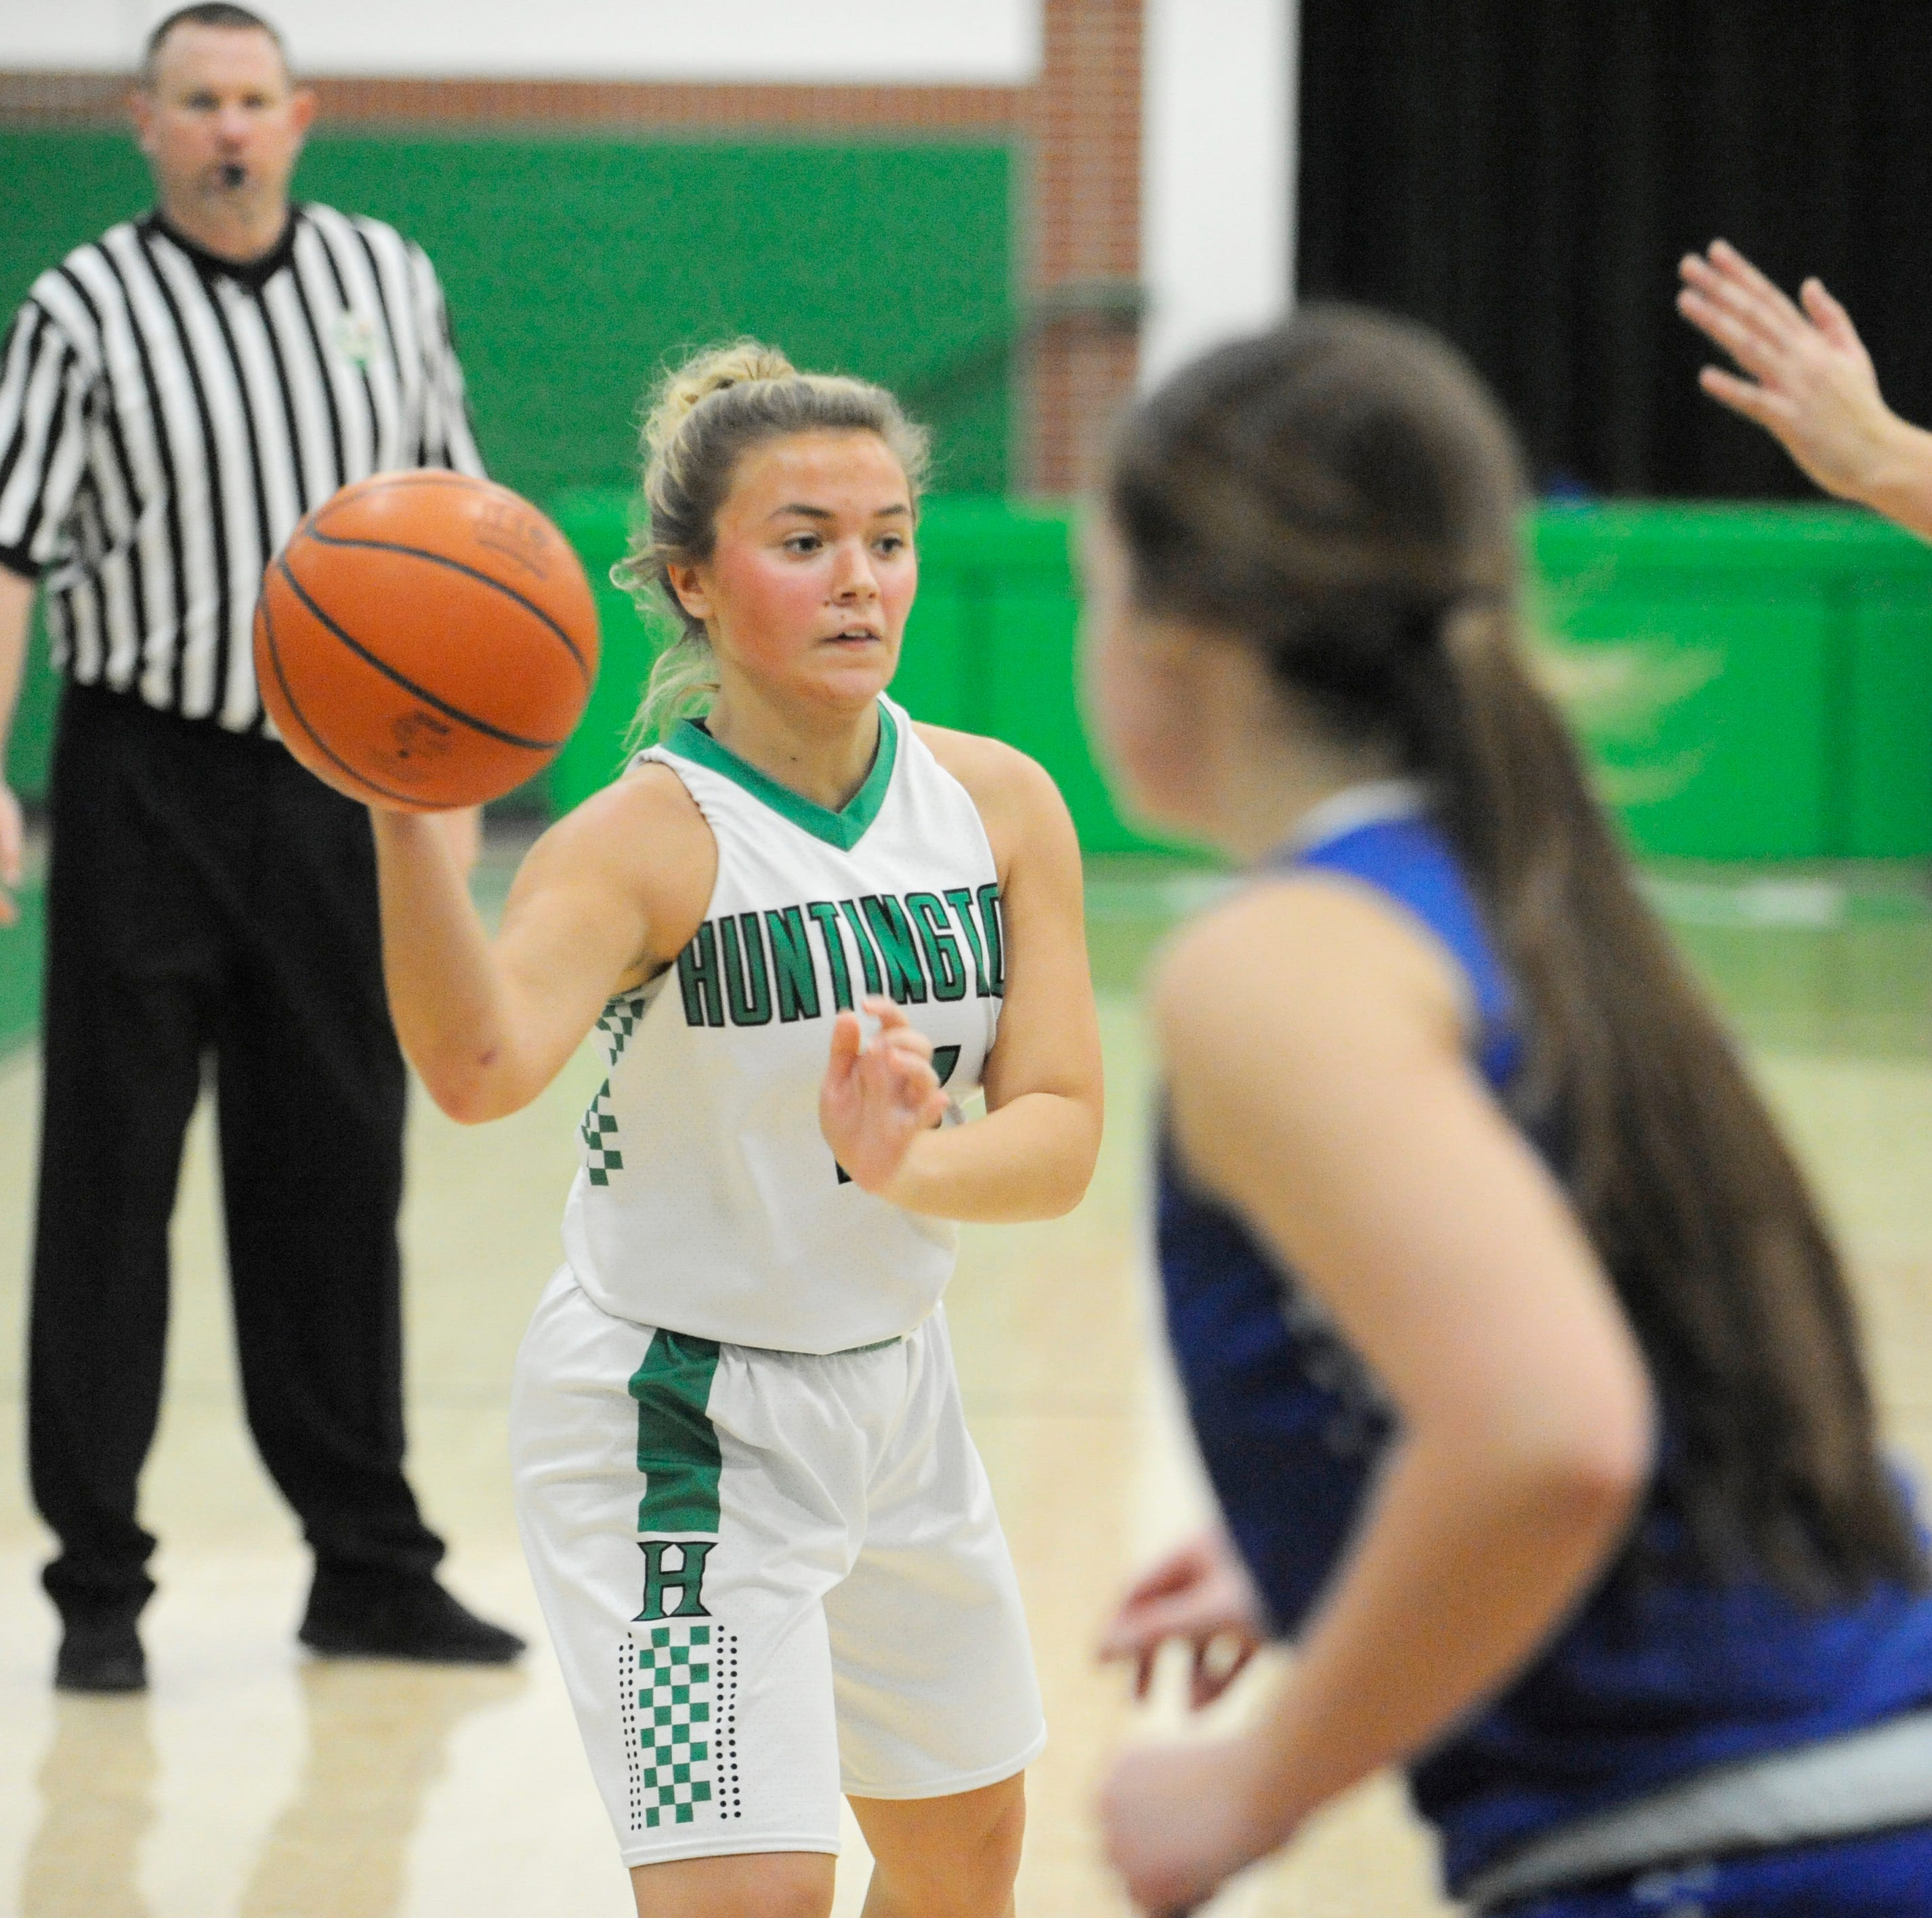 Huntington uses strong second quarter to defeat SE 51-45